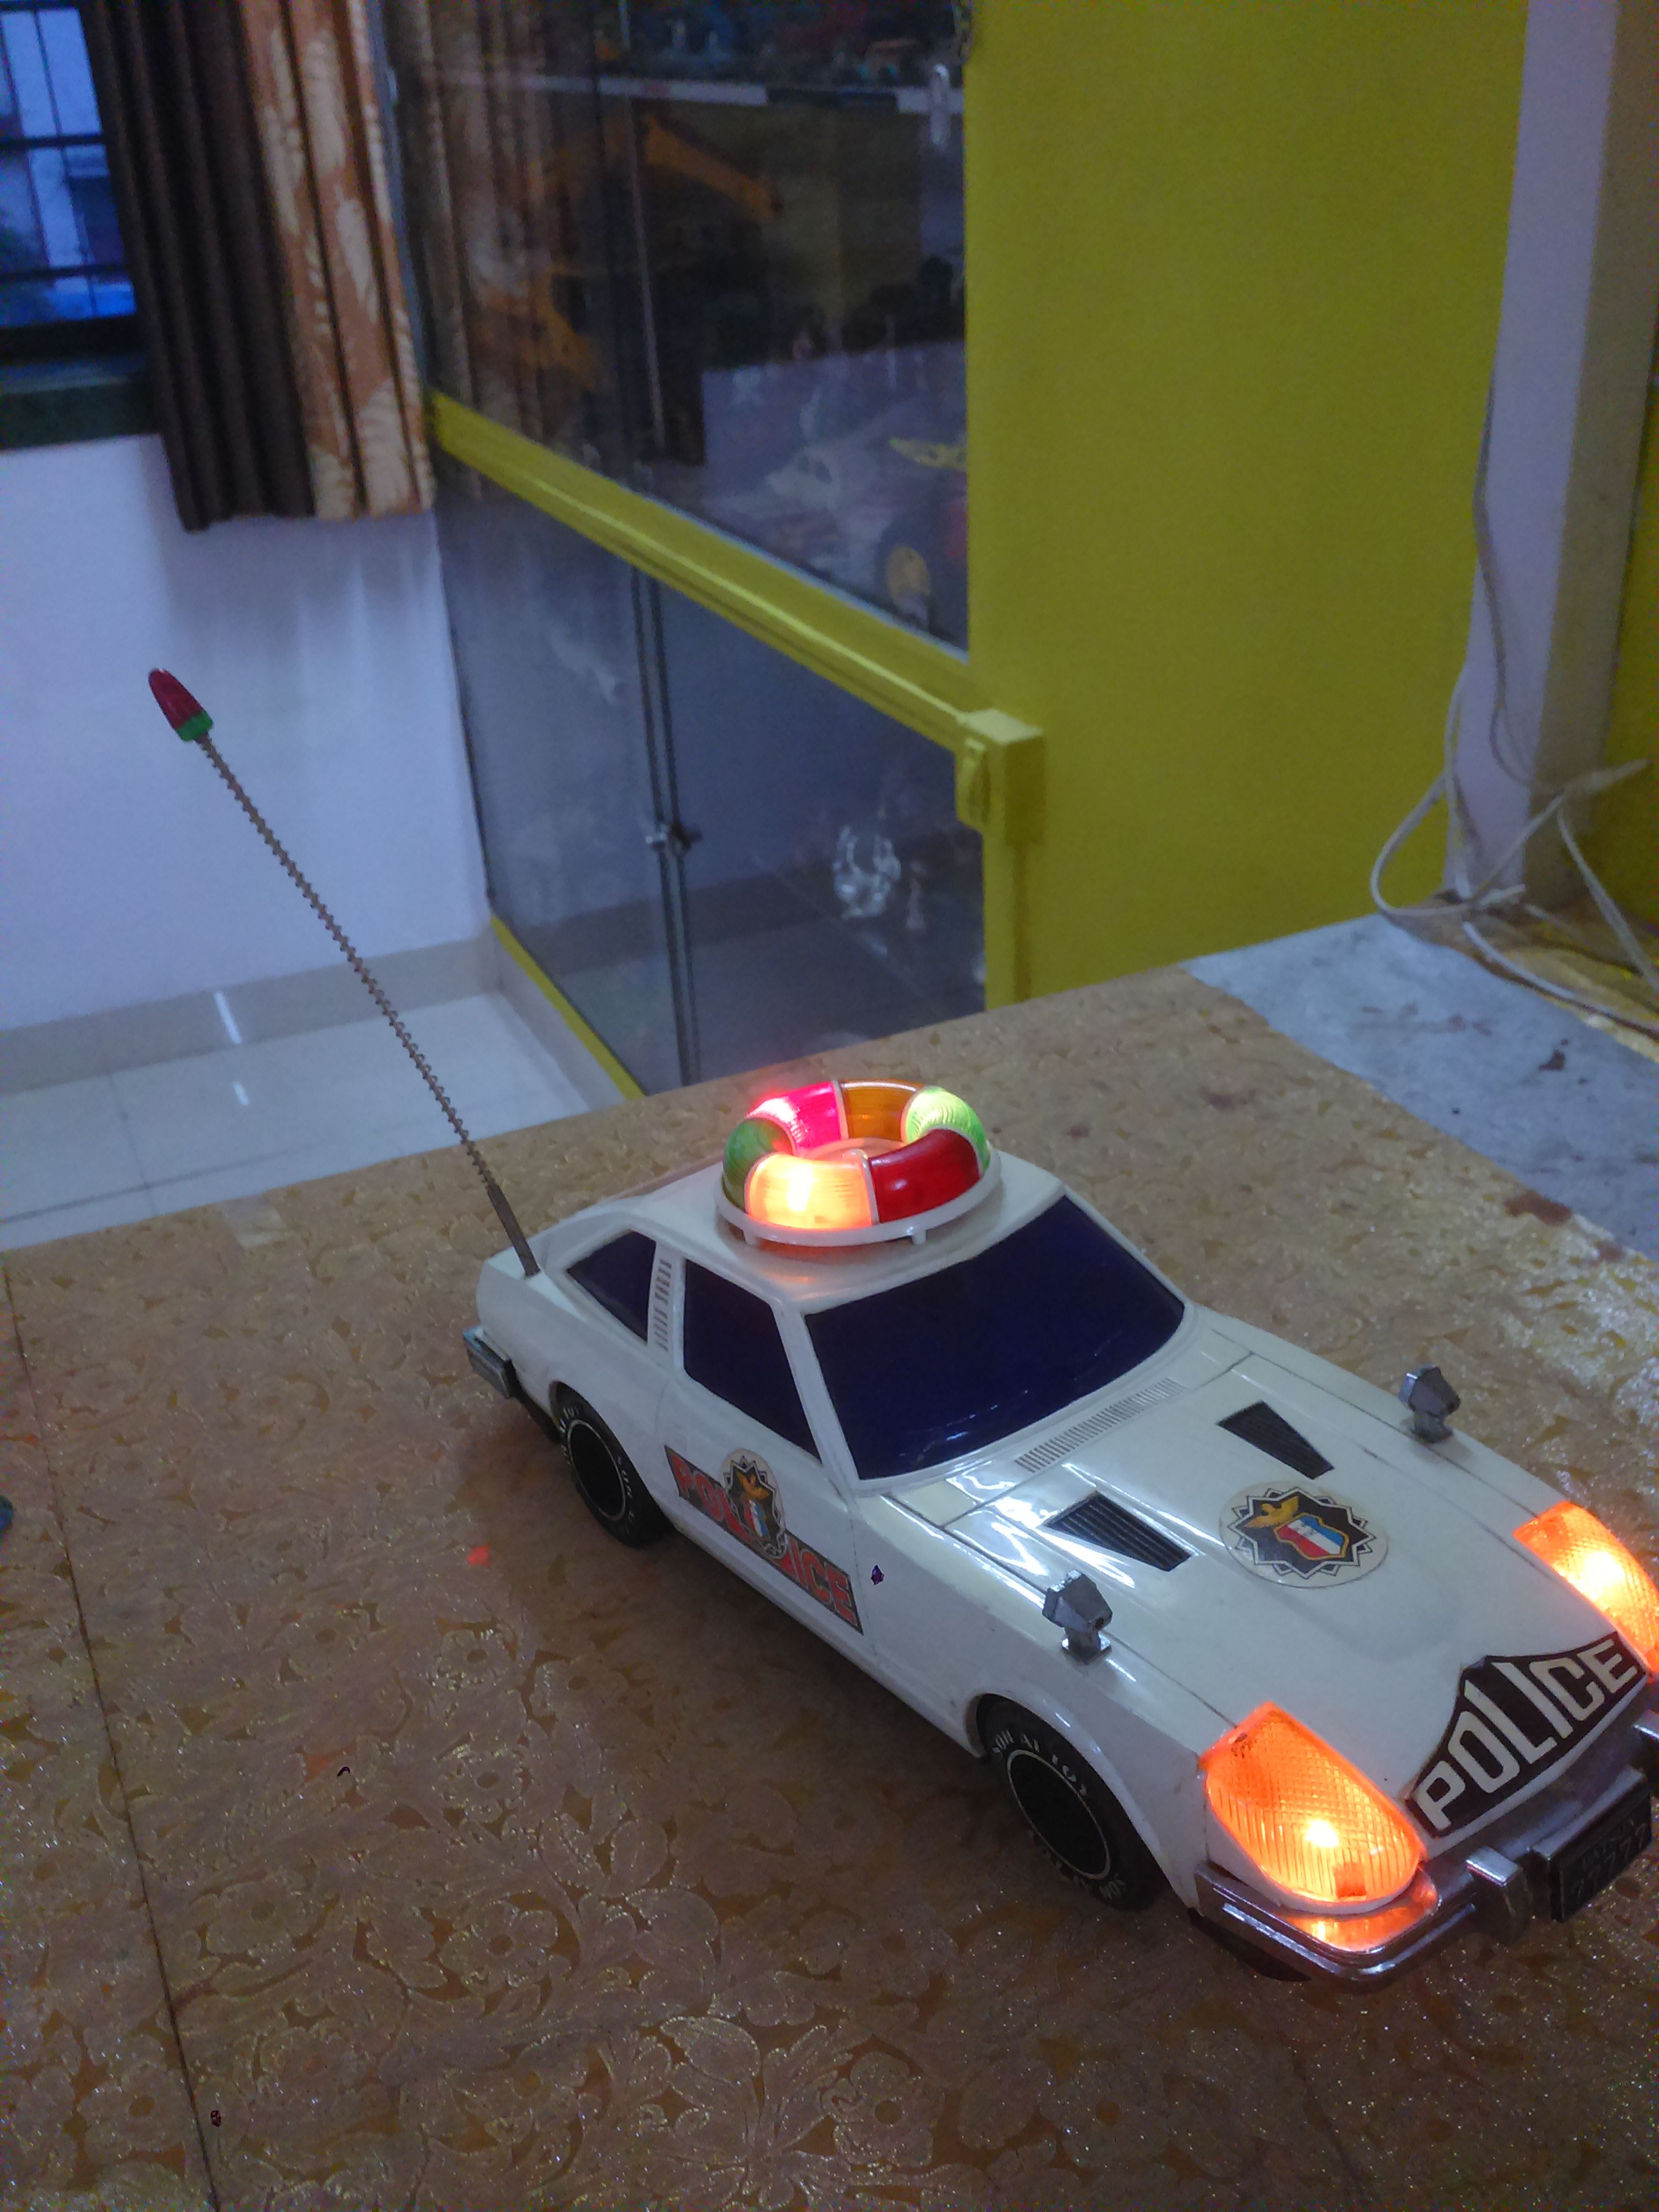 Datsun Fairlady Police Car Old Toy Old Toys Police Cars Toys